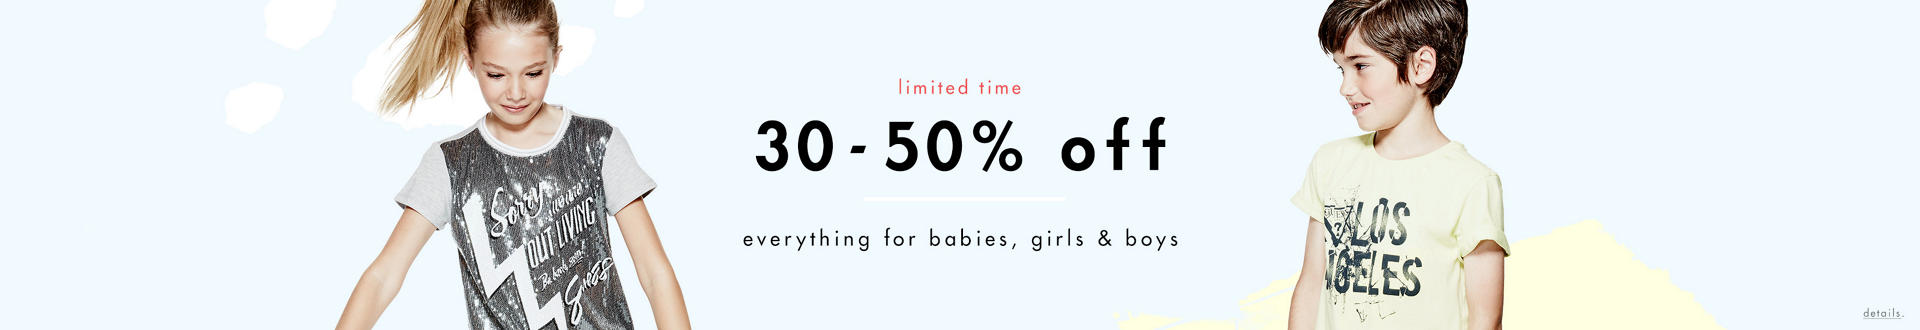 Sale Extra 30-50% Off